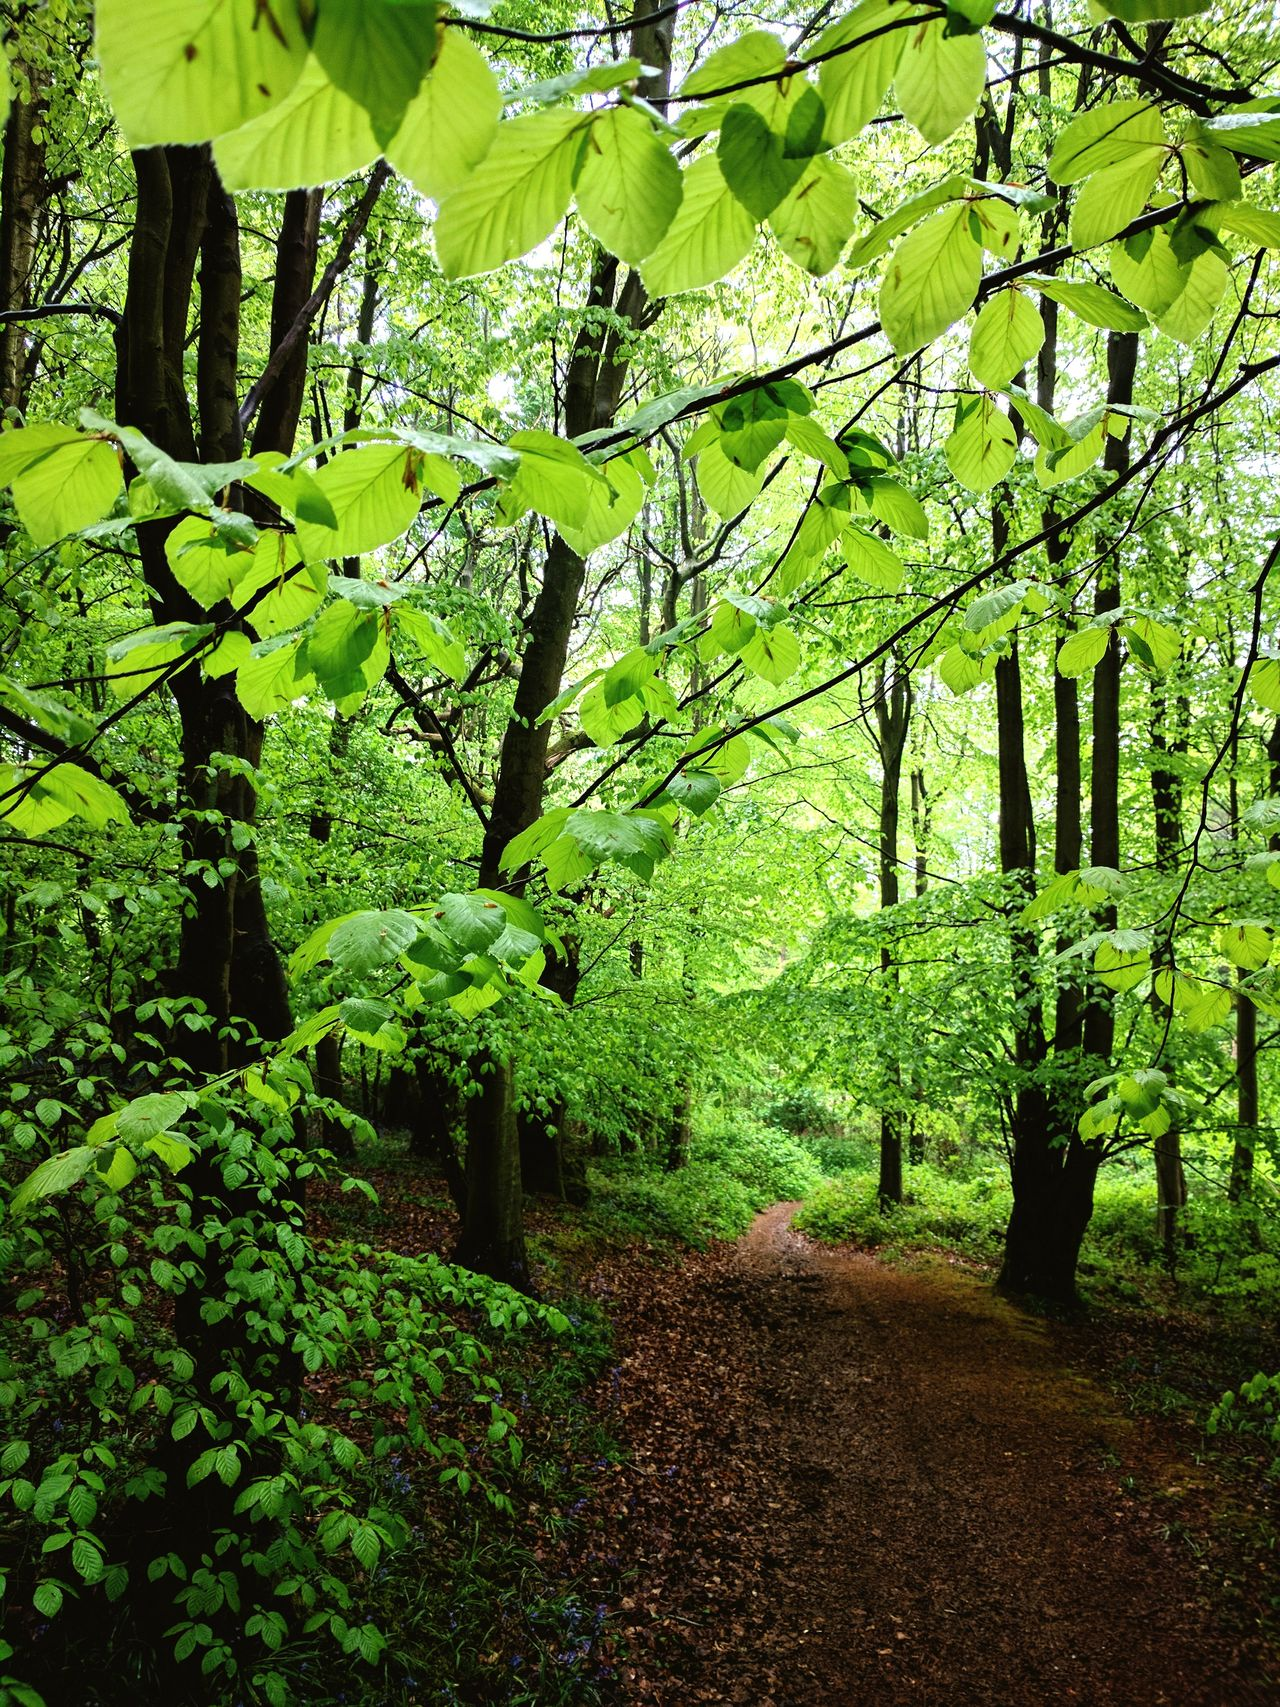 Green Color Growth Nature Outdoors Tree No People Beauty In Nature Leaf Beech Landscape Trees And Bushes Tree England Badby